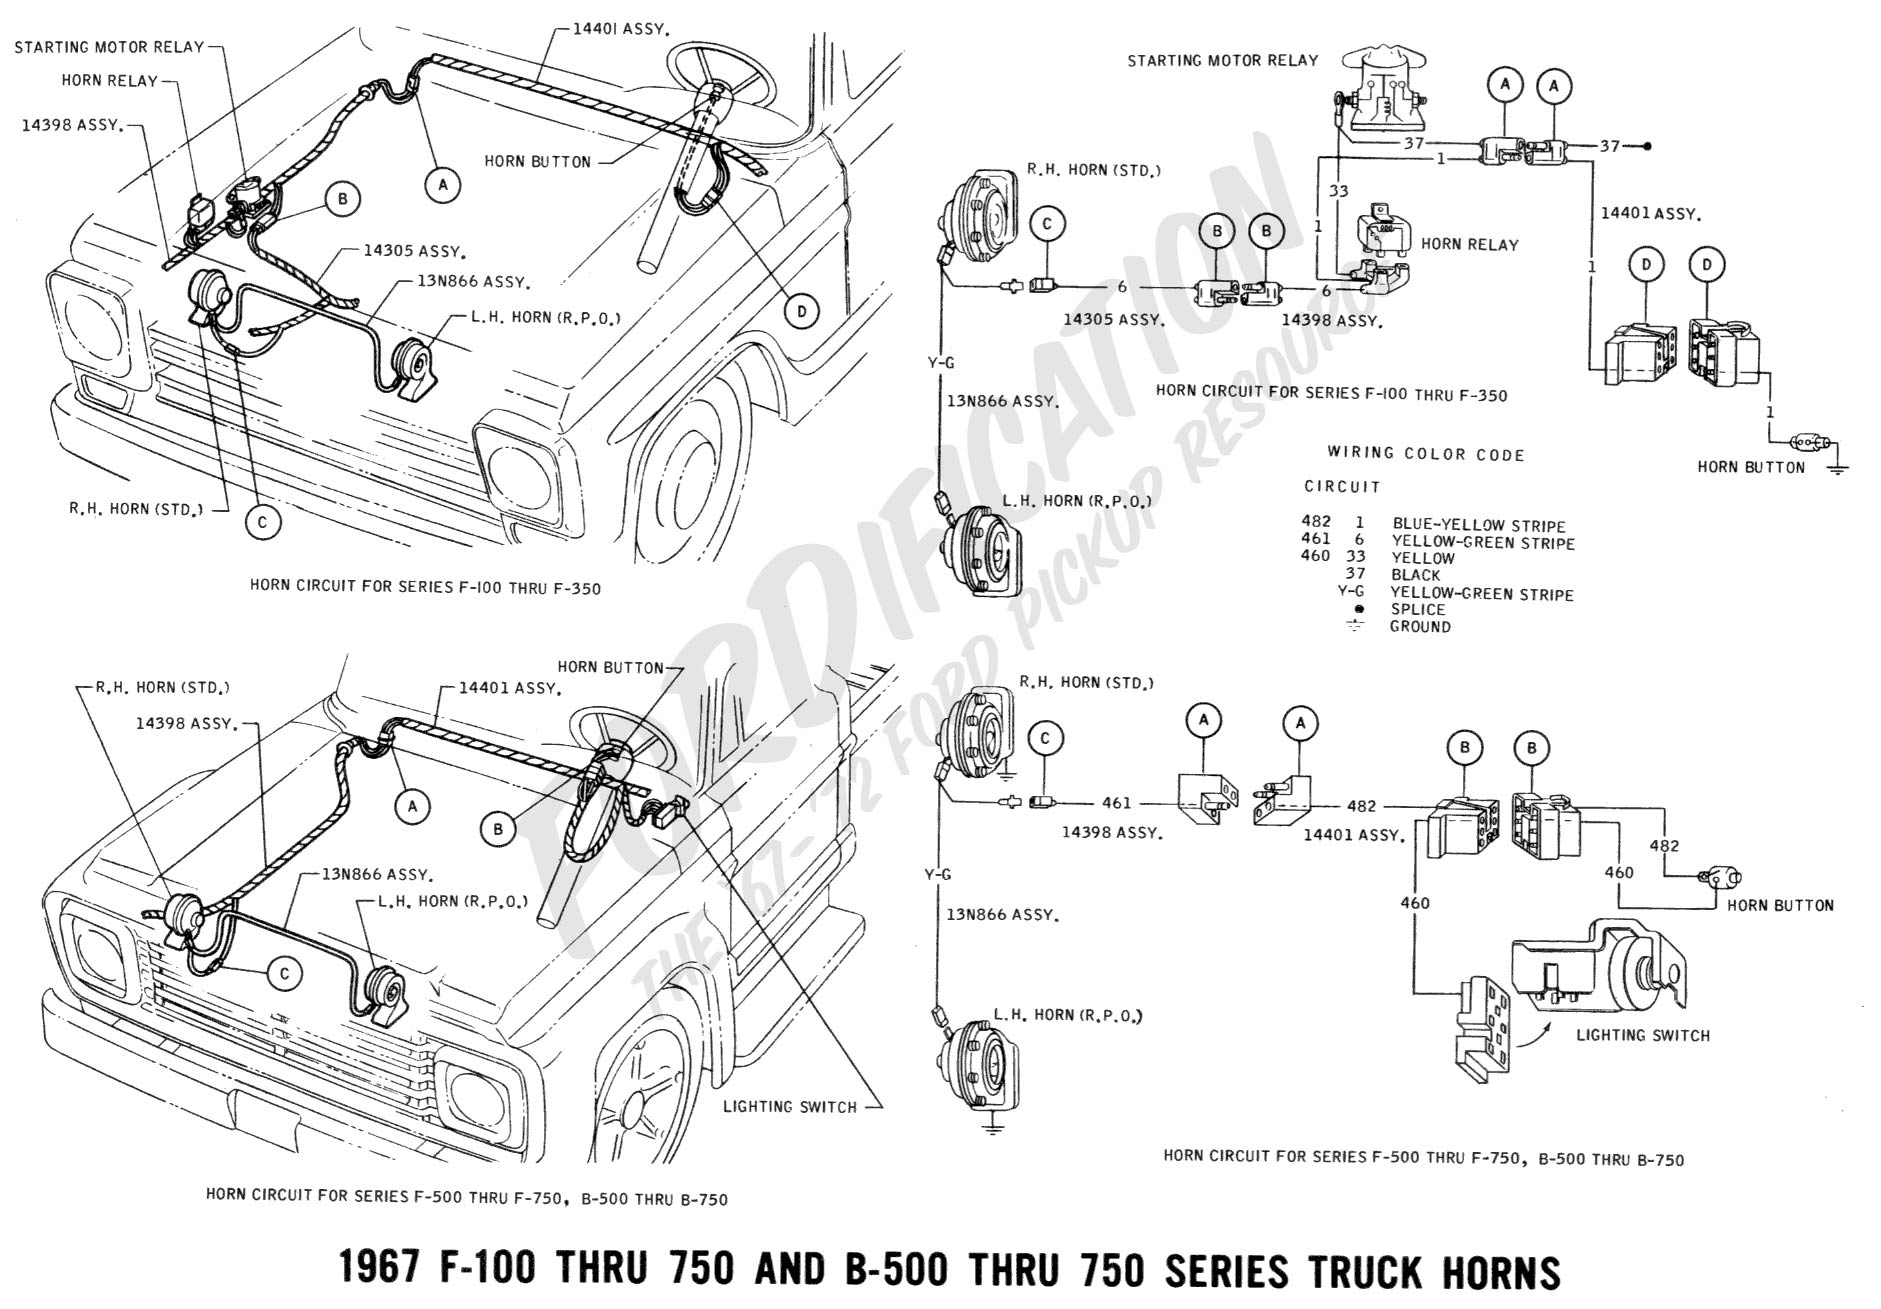 Pontiac Hood Tachometer Wiring Diagram as well 1975 Jeep Cj5 Wiring Diagram additionally 1972 Ford F100 Fuse Box Diagram together with Wiring Diagram For 1973 Dodge Charger together with 1970 Ford F100 Horn Wiring Diagram. on 1971 chevy ignition switch diagram